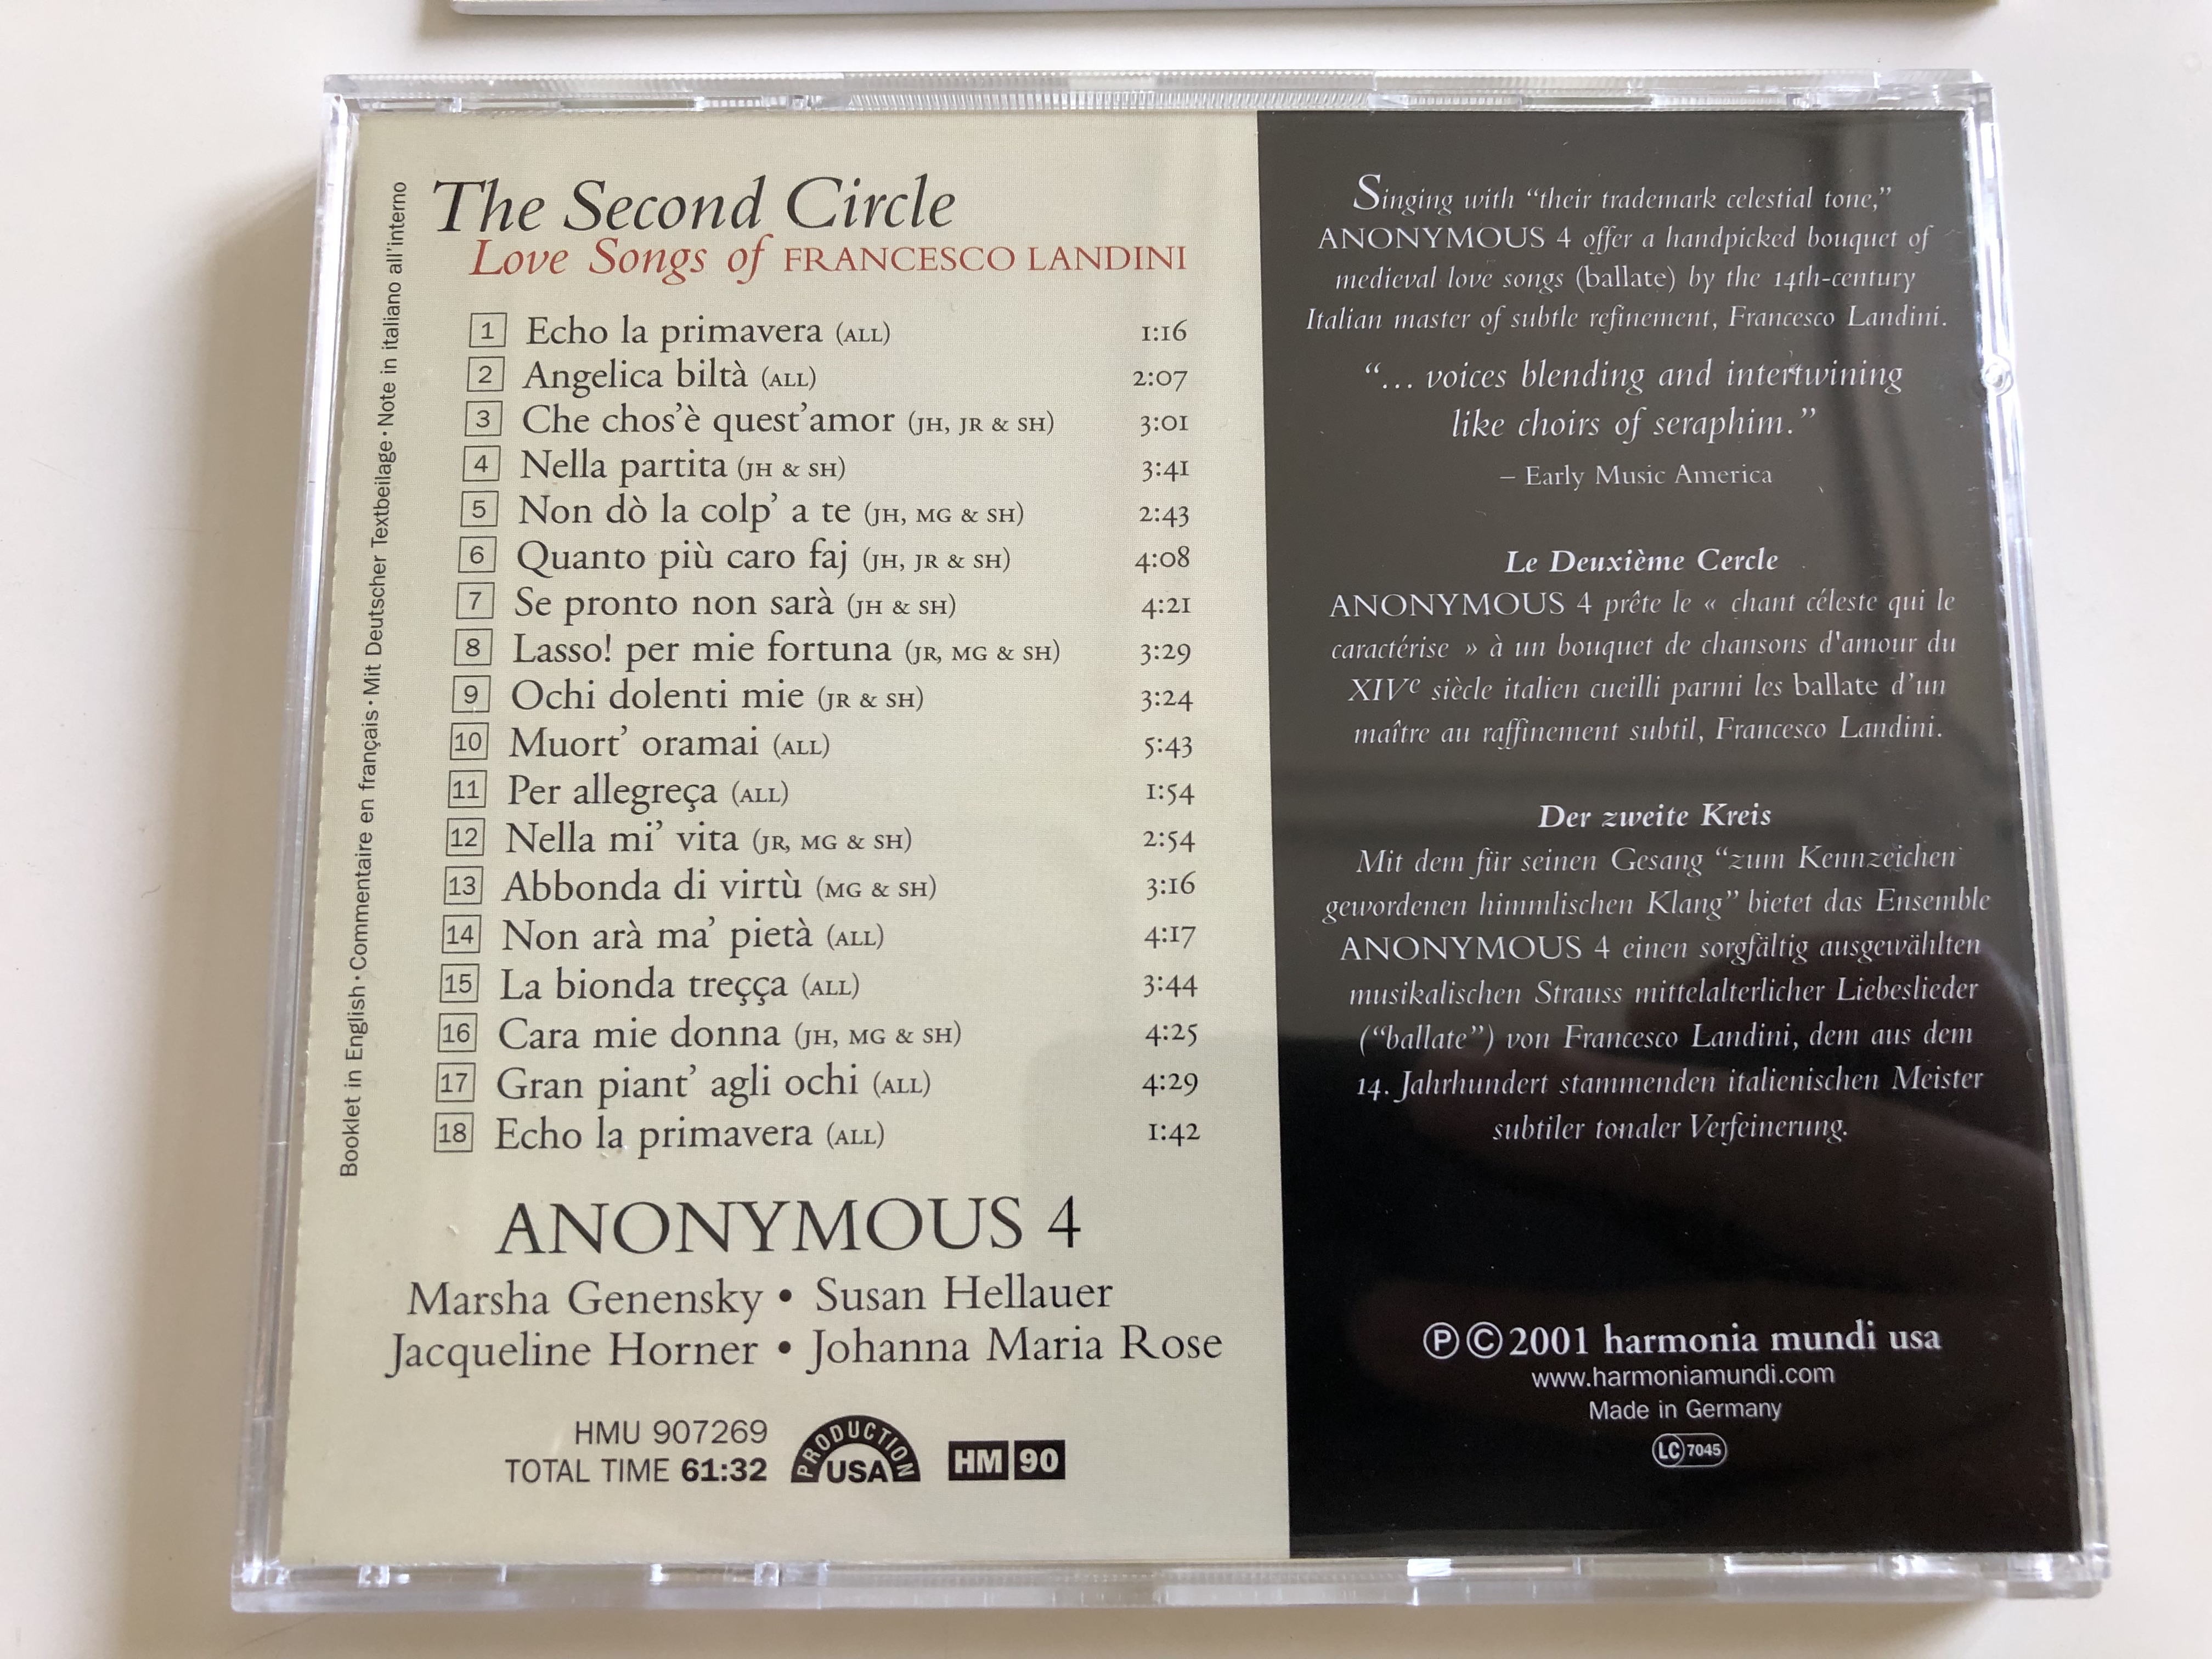 the-second-circle-love-songs-of-francesco-landini-anonymous-4-marsha-genensky-susan-hellauer-jacqueline-horner-johanna-maria-rose-audio-cd-2001-hmu-907269-3-.jpg